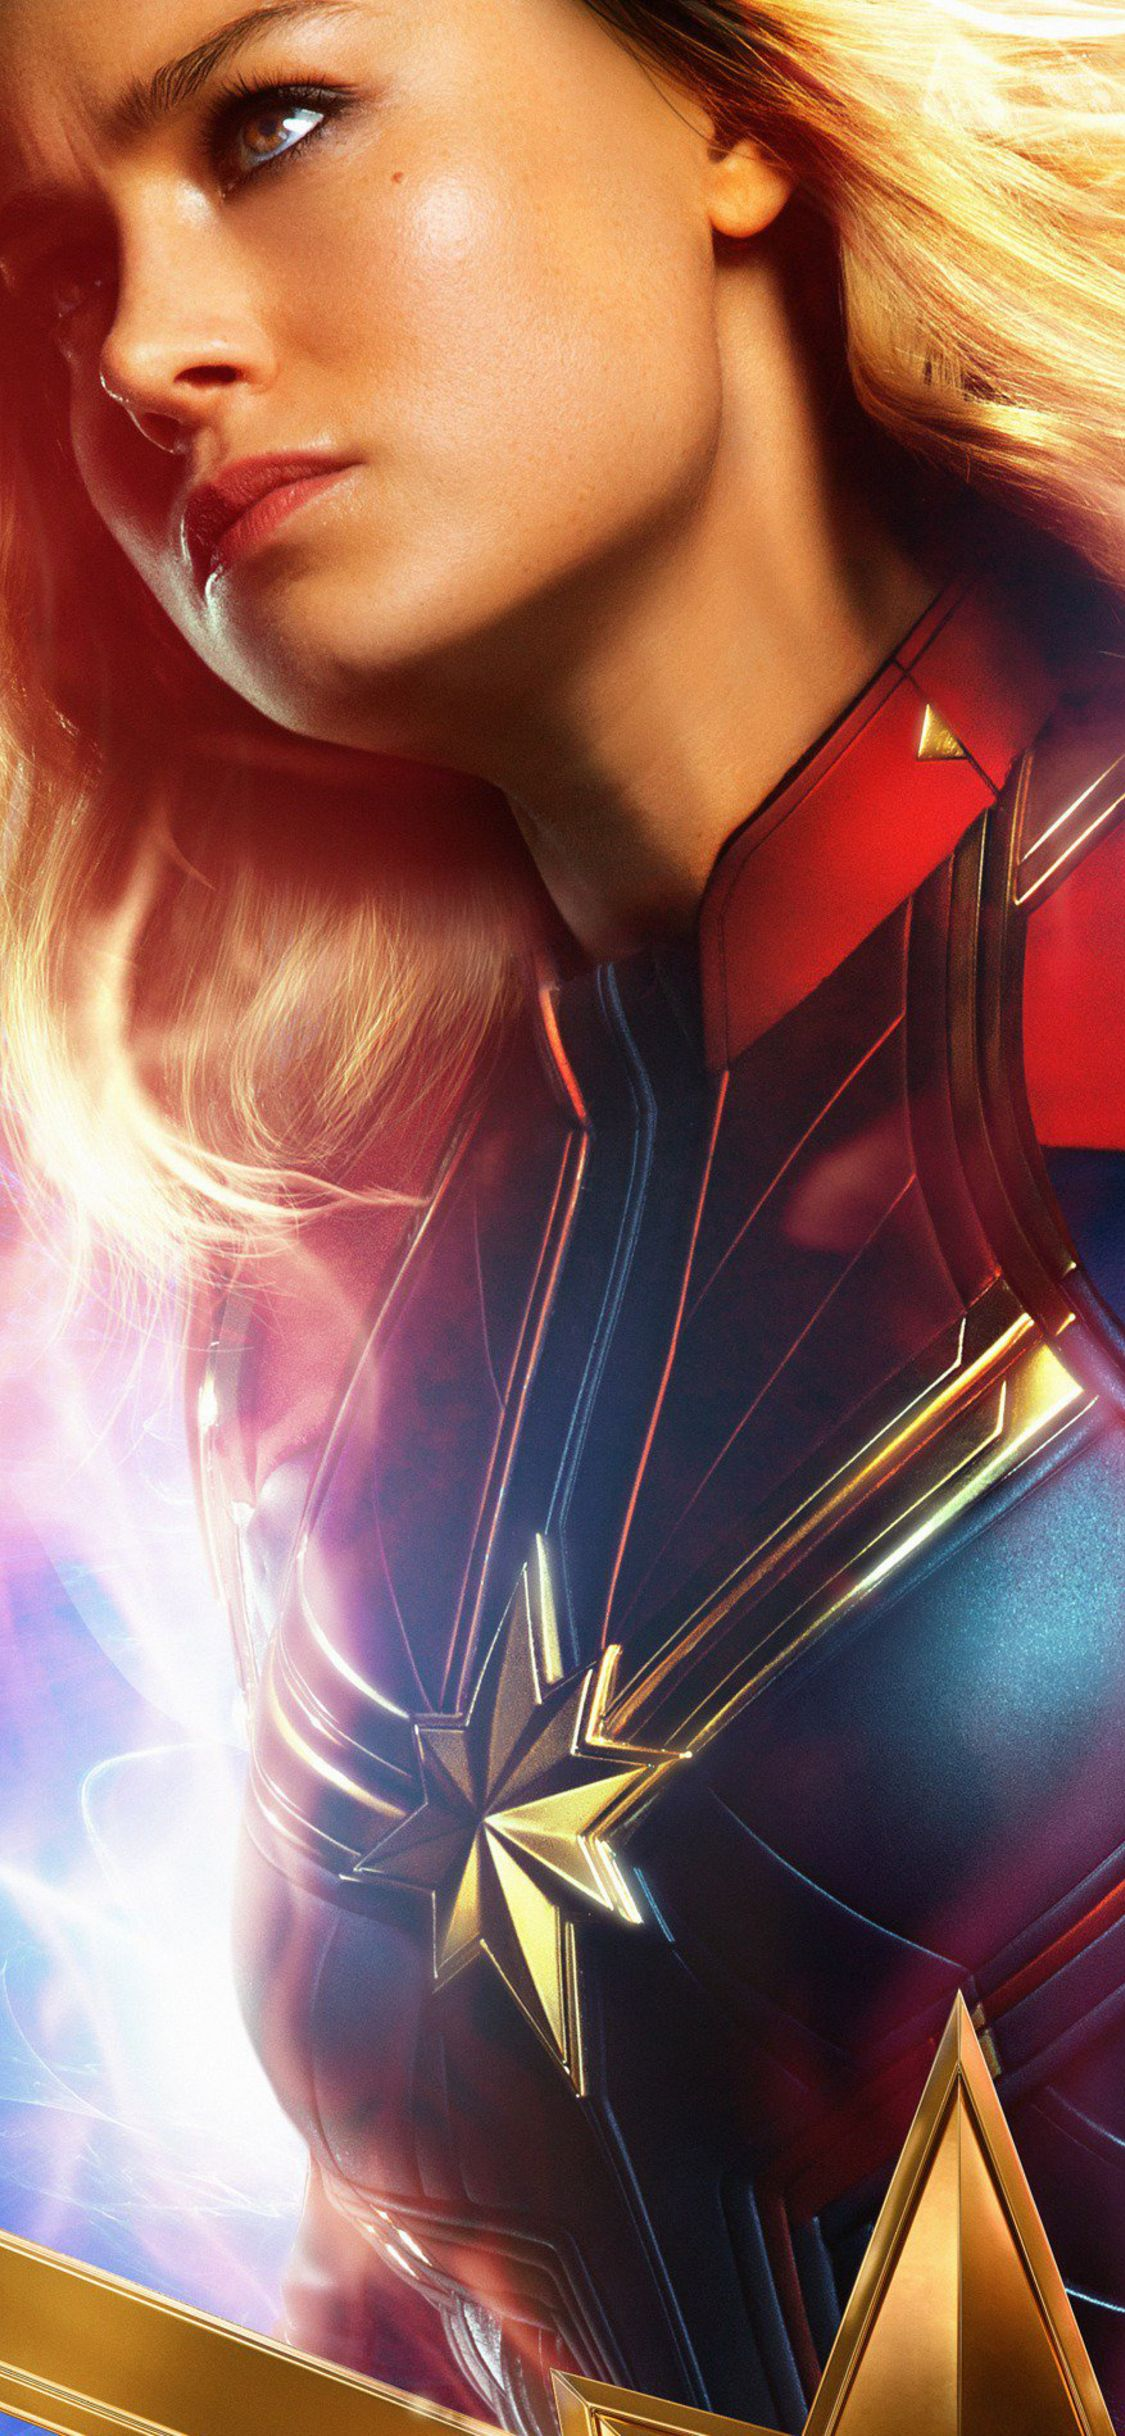 1125x2436 Brie Larson As Carol Danvers In Captain Marvel Iphone Xs Iphone 10 Iphone X Hd 4k Wallpapers Imag Captain Marvel Marvel Comics Wallpaper Brie Larson